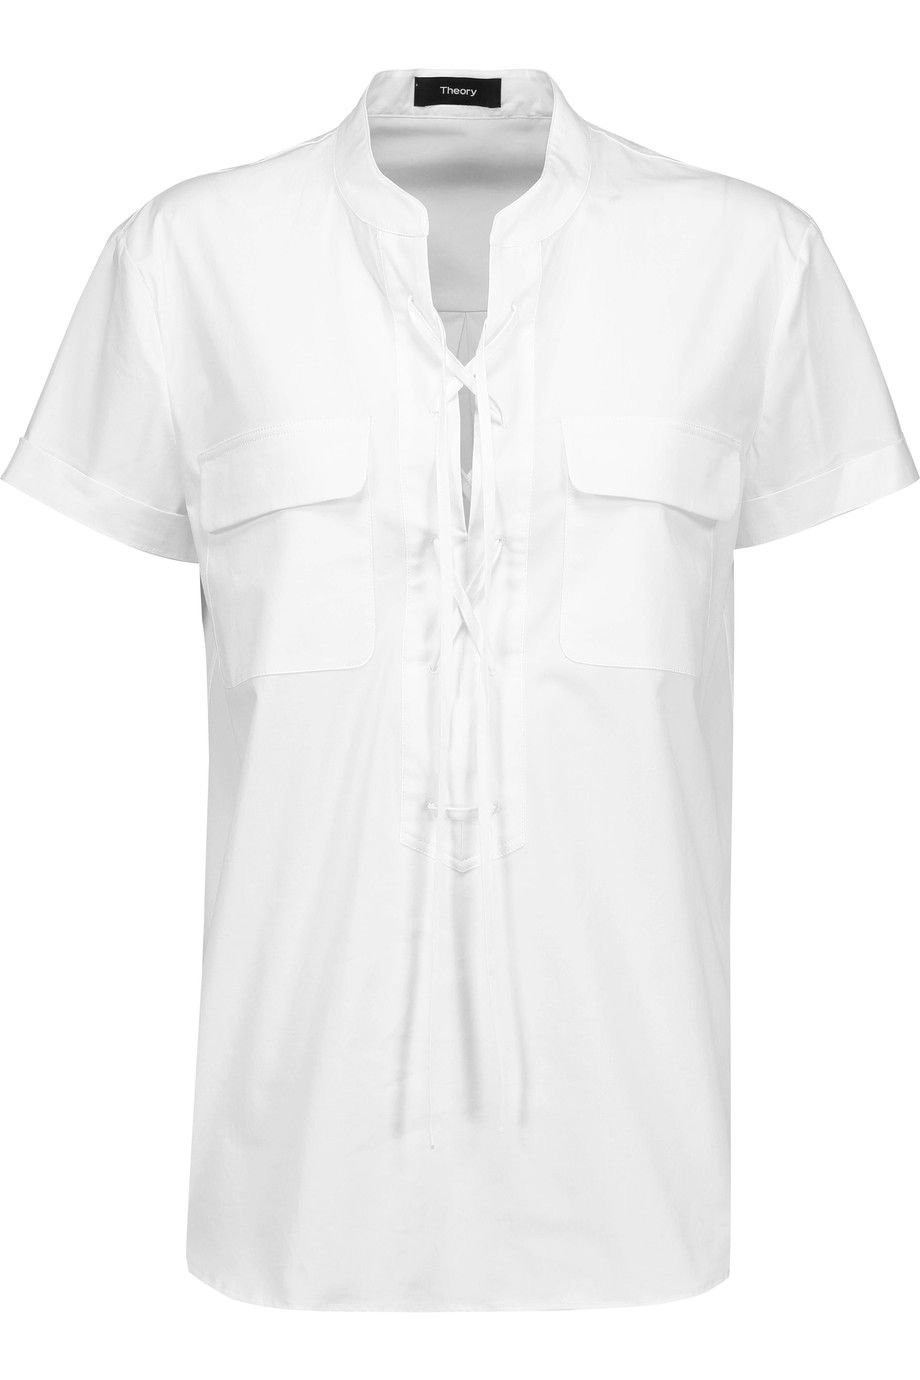 Shop on-sale Theory Idellea lace-up stretch-cotton poplin top. Browse